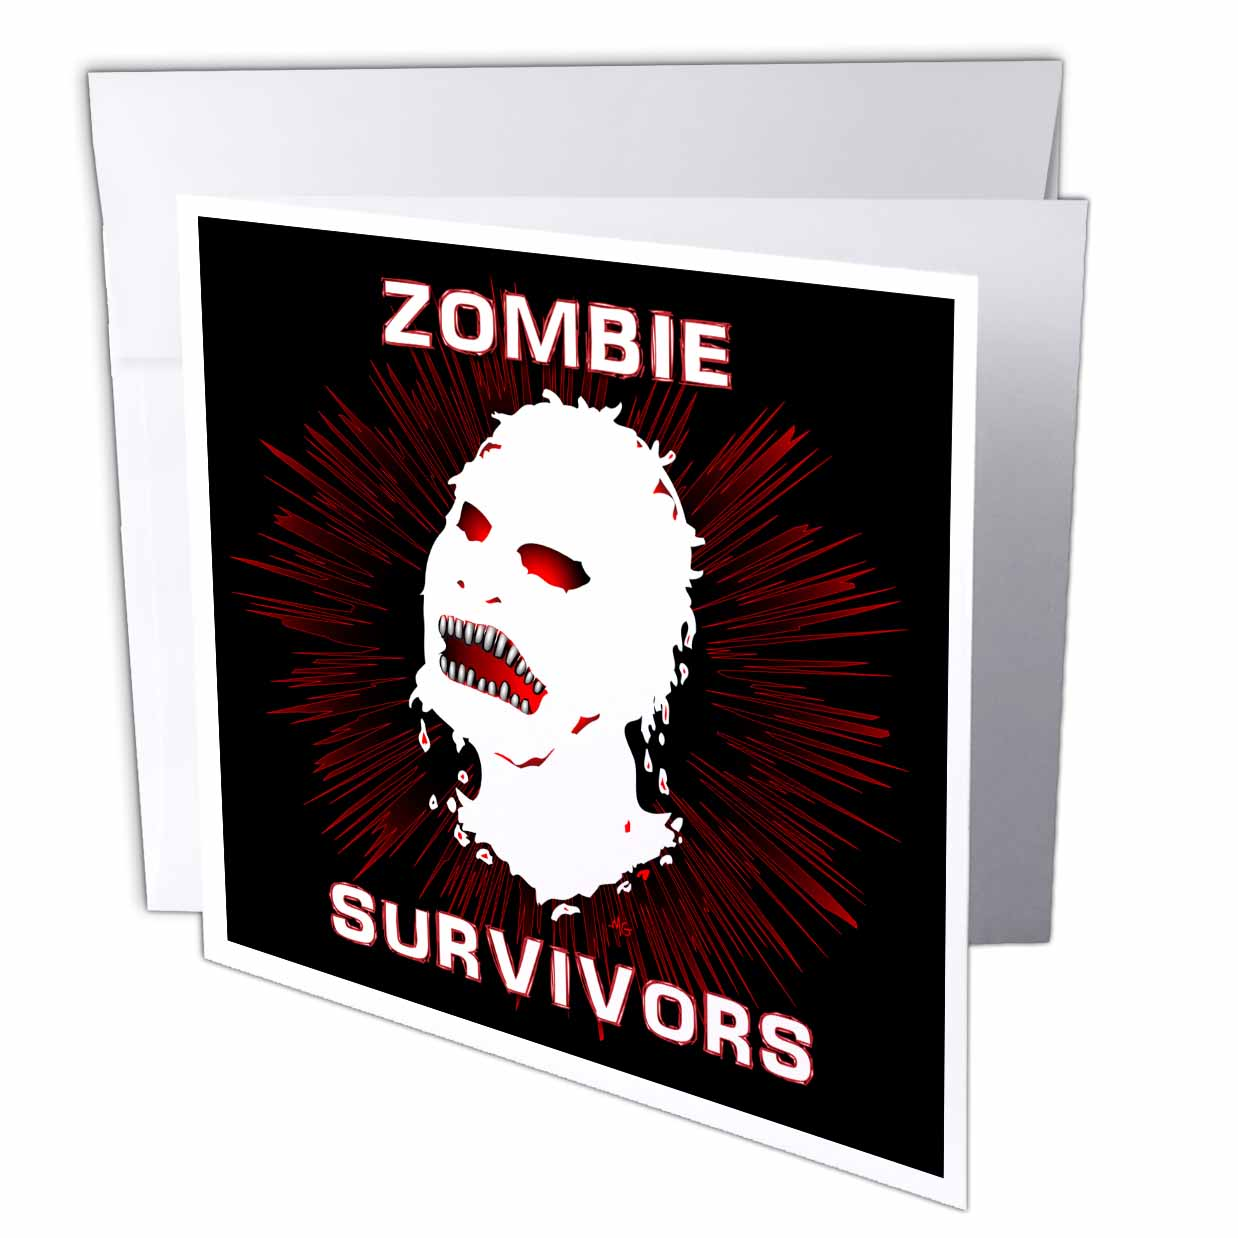 3dRose ICON zombie survivors 2 on black, Greeting Cards, 6 x 6 inches, set of 6